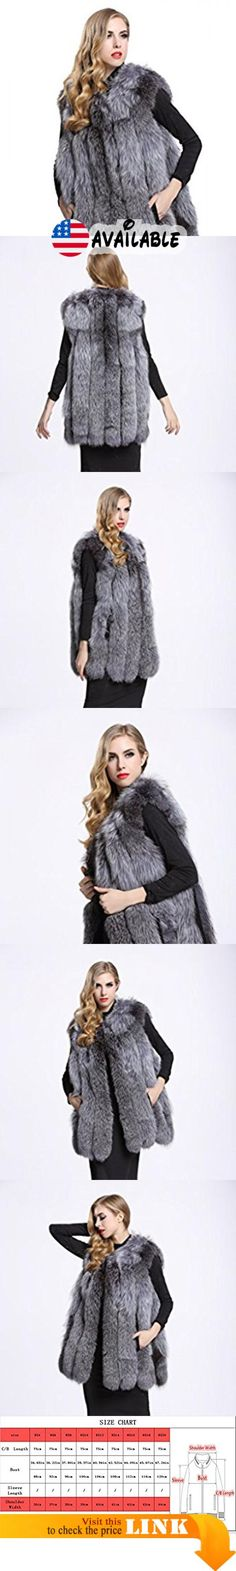 "B01IUR7MZA : TOPFUR Women's Natural Fox Fur Vests Fashion Silver Fur Waistcoat(XL). Made from high quality and soft Genuine Knitted rabbit fur external which feels cozy on the skin and comfortable to wear.. Available sizes and colors of stylish fox fur vest excellently fit well with your demand. Length:29.53""(75cm). Elegant Bar with handsome slant pockets design look stereoscopic and gorgeous as the model shows when wearing this noble and fashion fur coat Suitable for any"